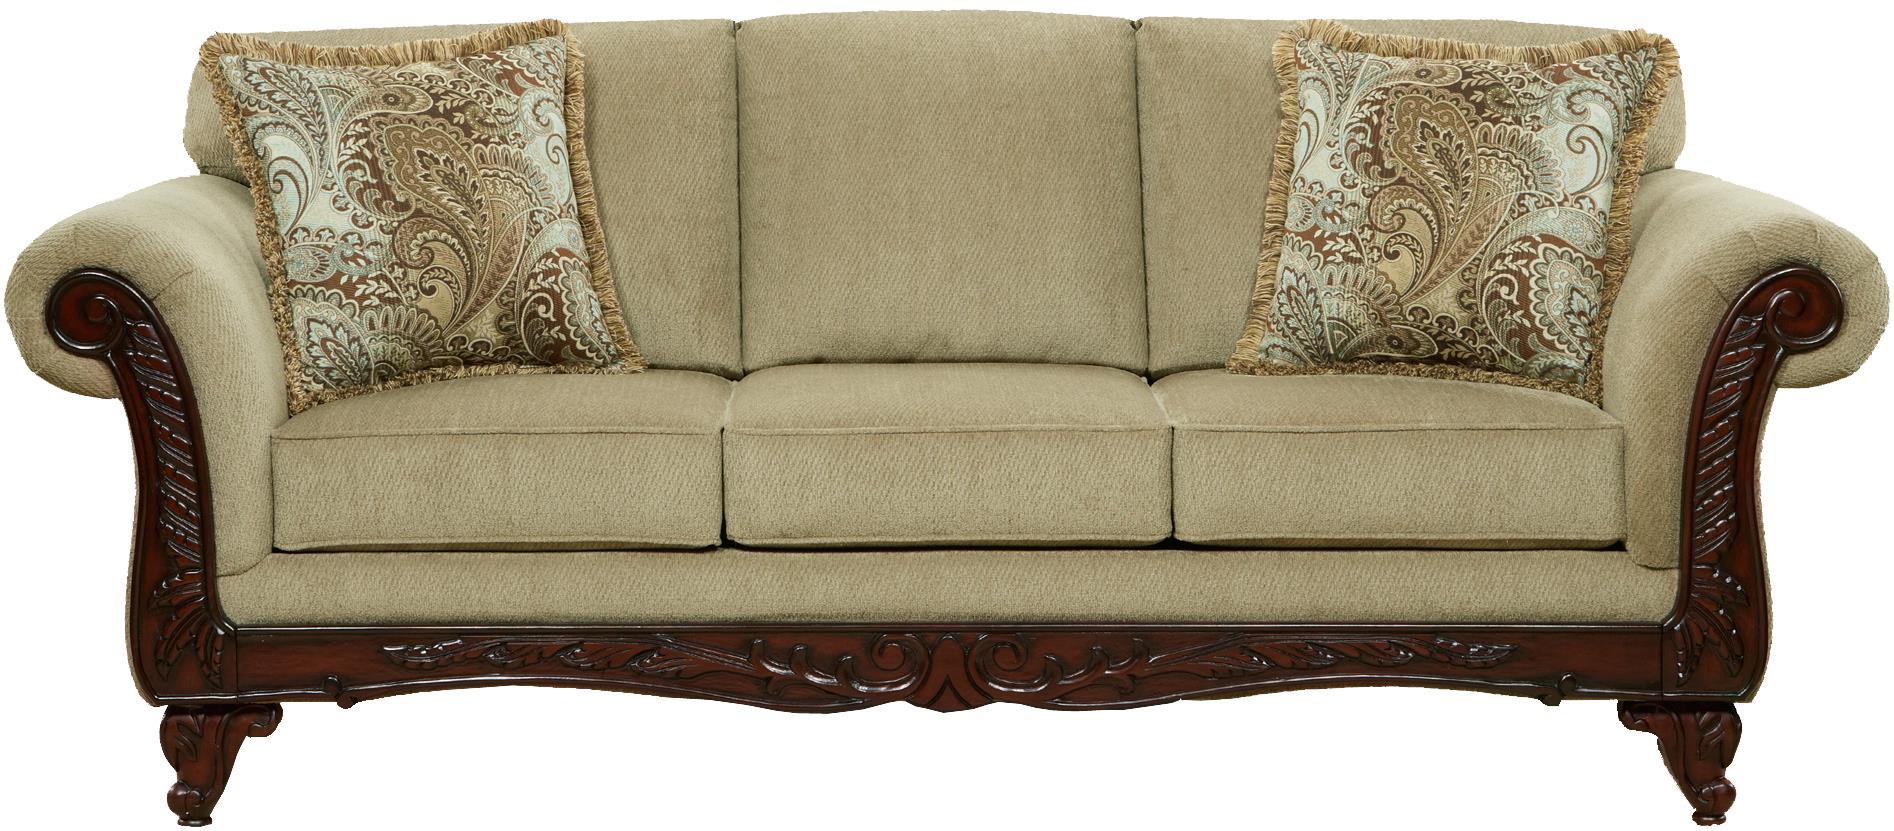 8500 Traditional Sofa by Affordable Furniture at Wilcox Furniture